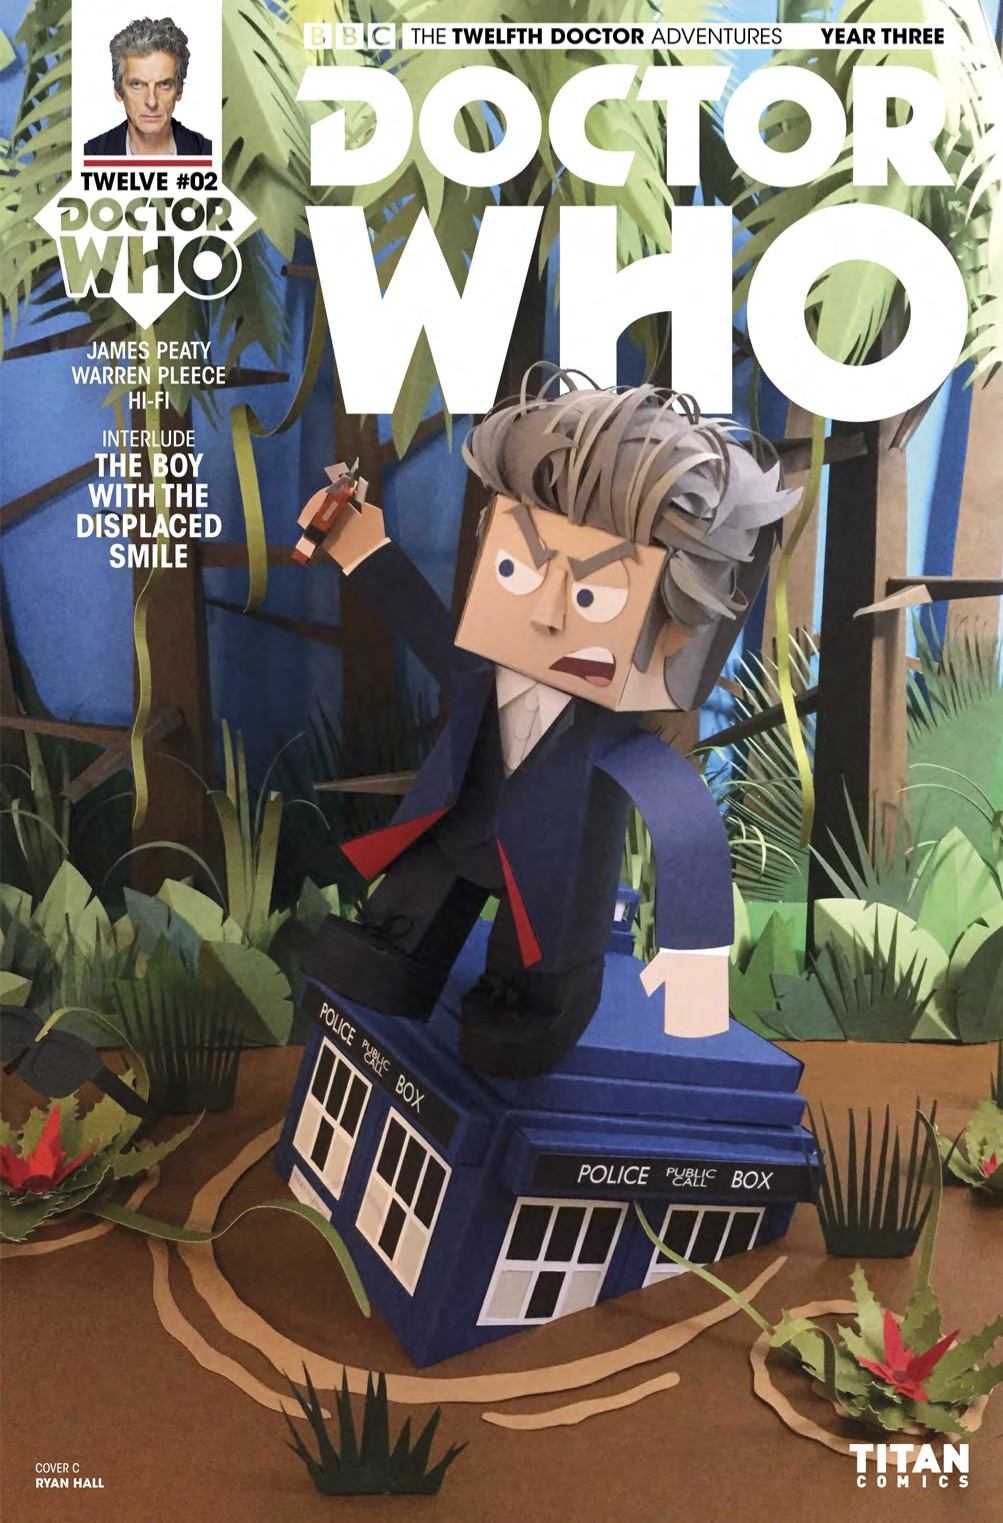 TWELFTH DOCTOR YEAR 3 #2 Cover C (Credit: Titan)